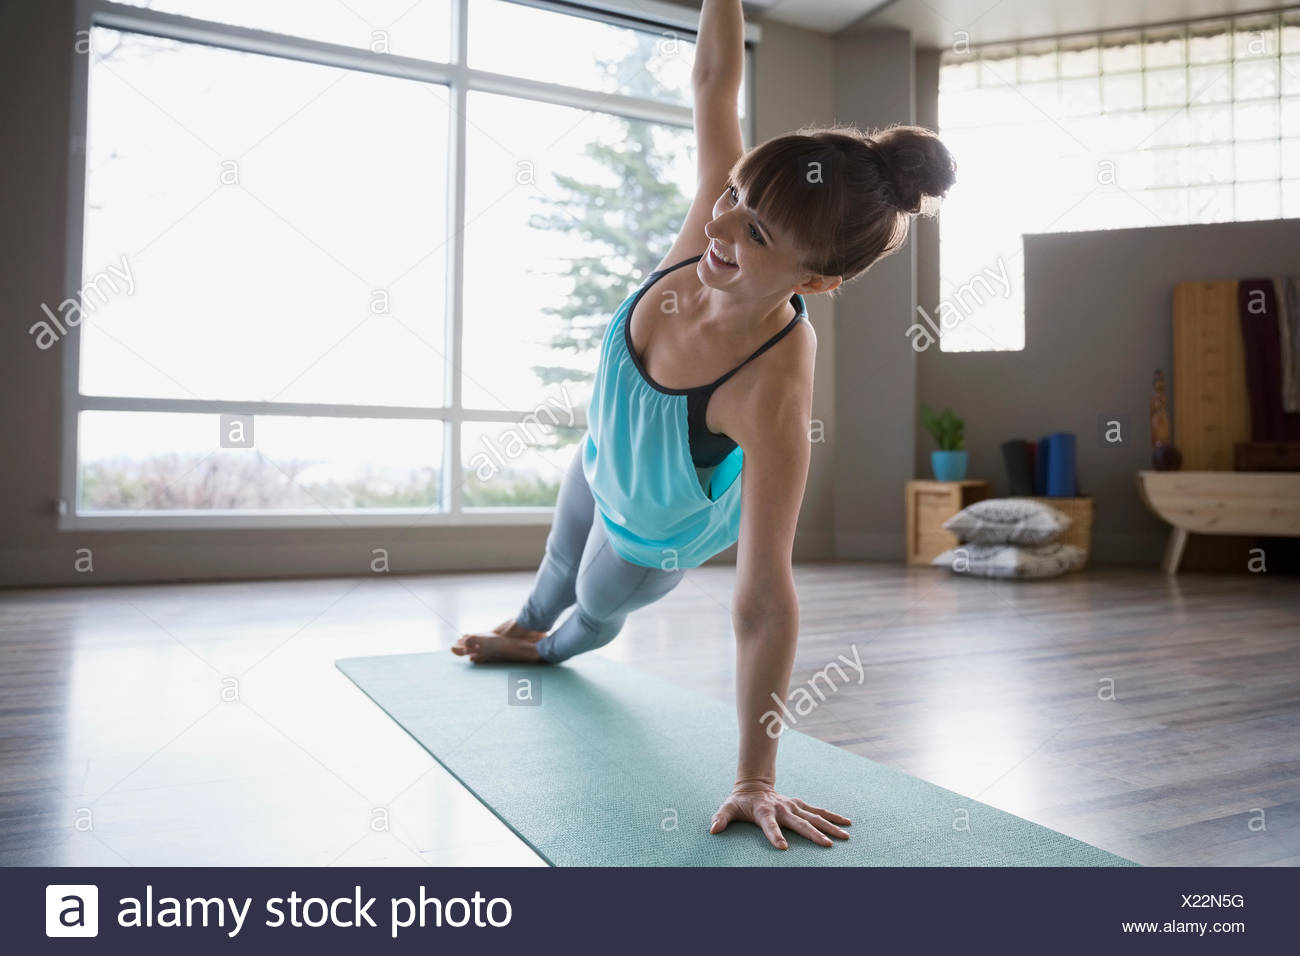 Smiling woman practicing yoga in side plank pose - Stock Image